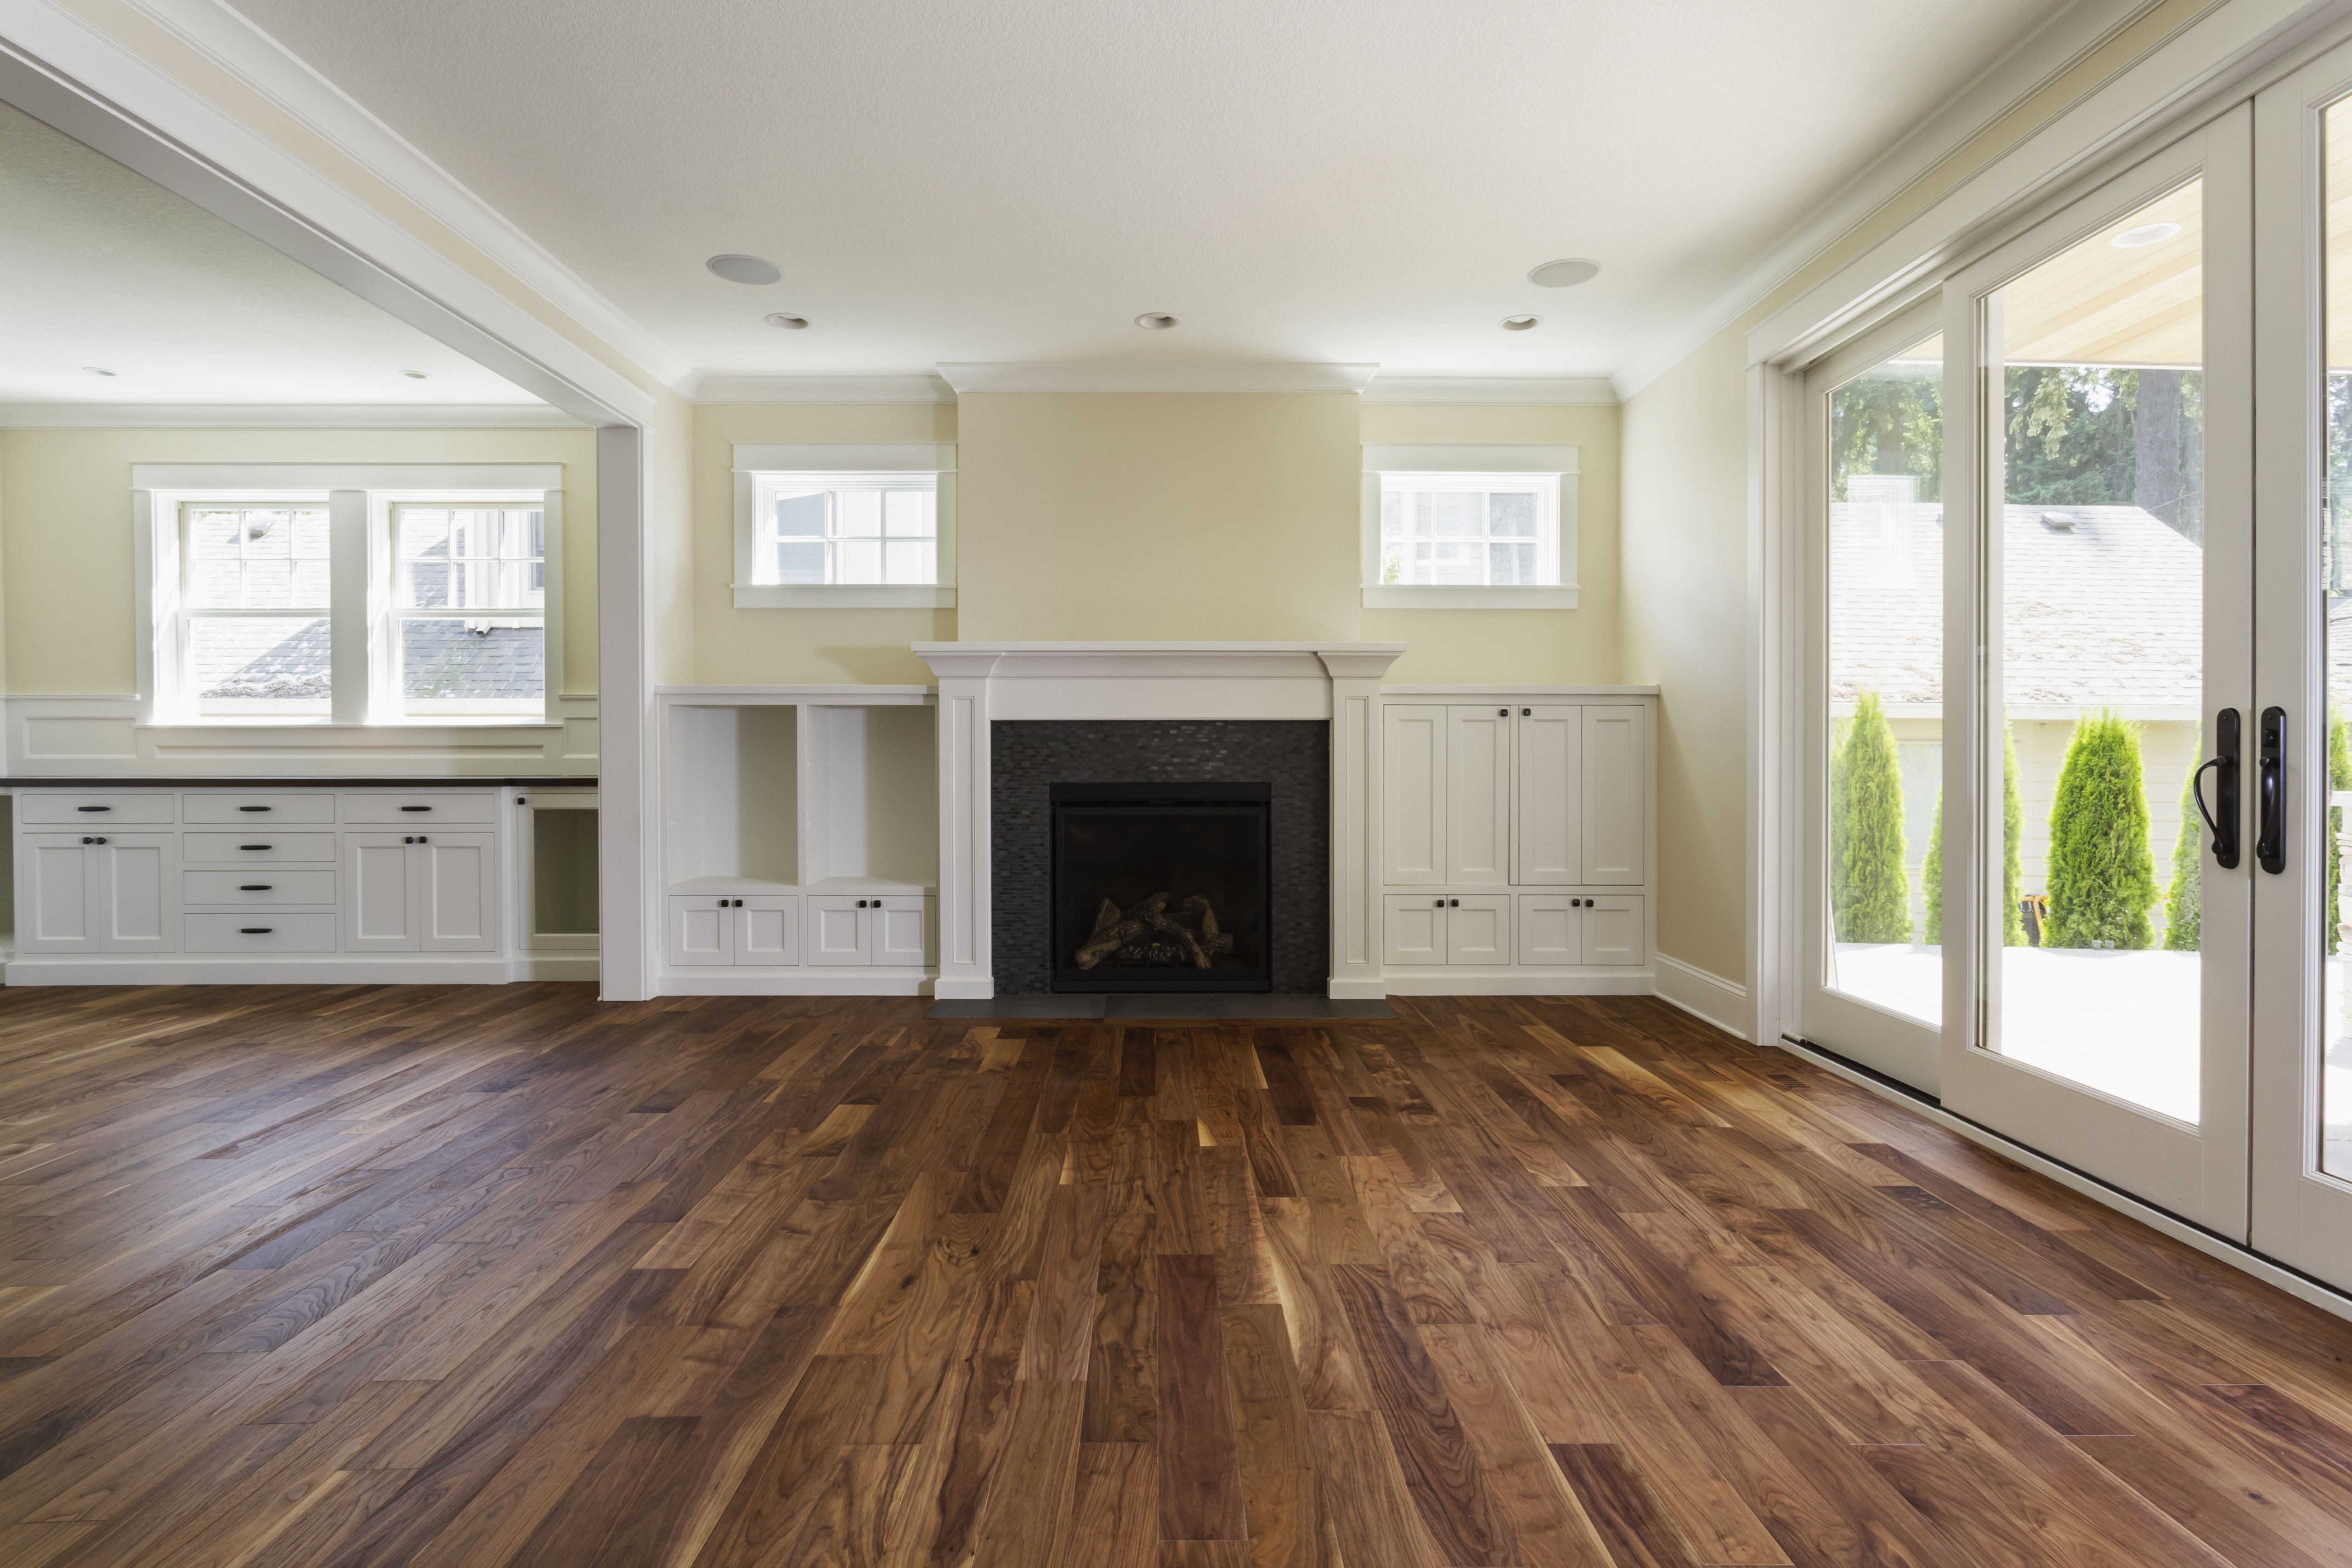 hardwood floor scratch filler of the pros and cons of prefinished hardwood flooring throughout fireplace and built in shelves in living room 482143011 57bef8e33df78cc16e035397